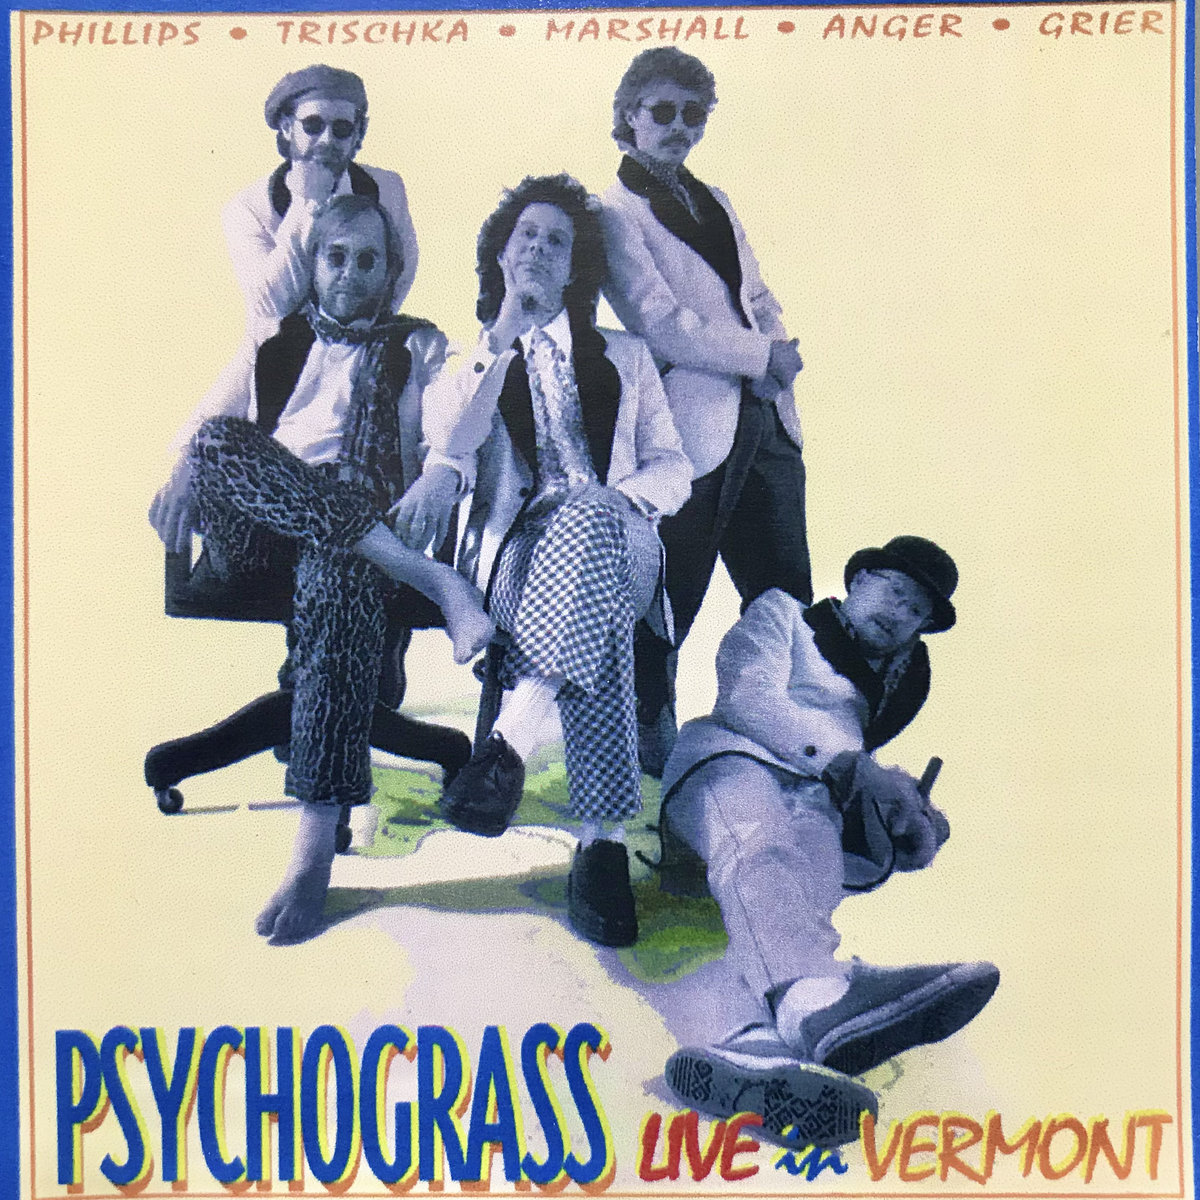 Psychograss Live in Vermont